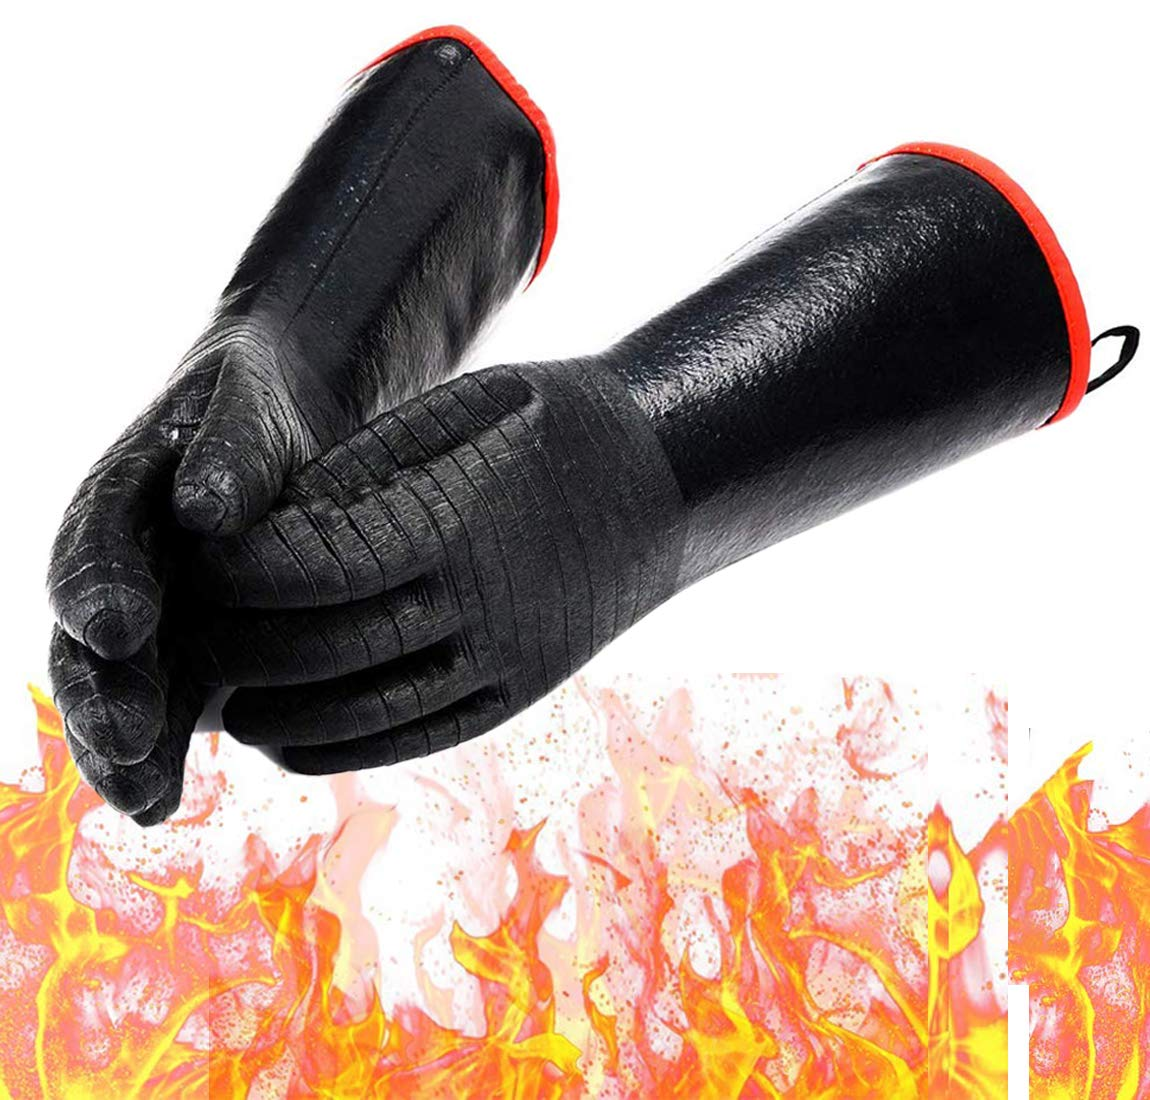 Schwer BBQ Gloves 932℉ Extreme Heat Resistant Gloves Waterproof Oil Resistant Grill Gloves for Turkey Fryer, Baking, Oven, Barbecue Neoprene Coating with Long Sleeve